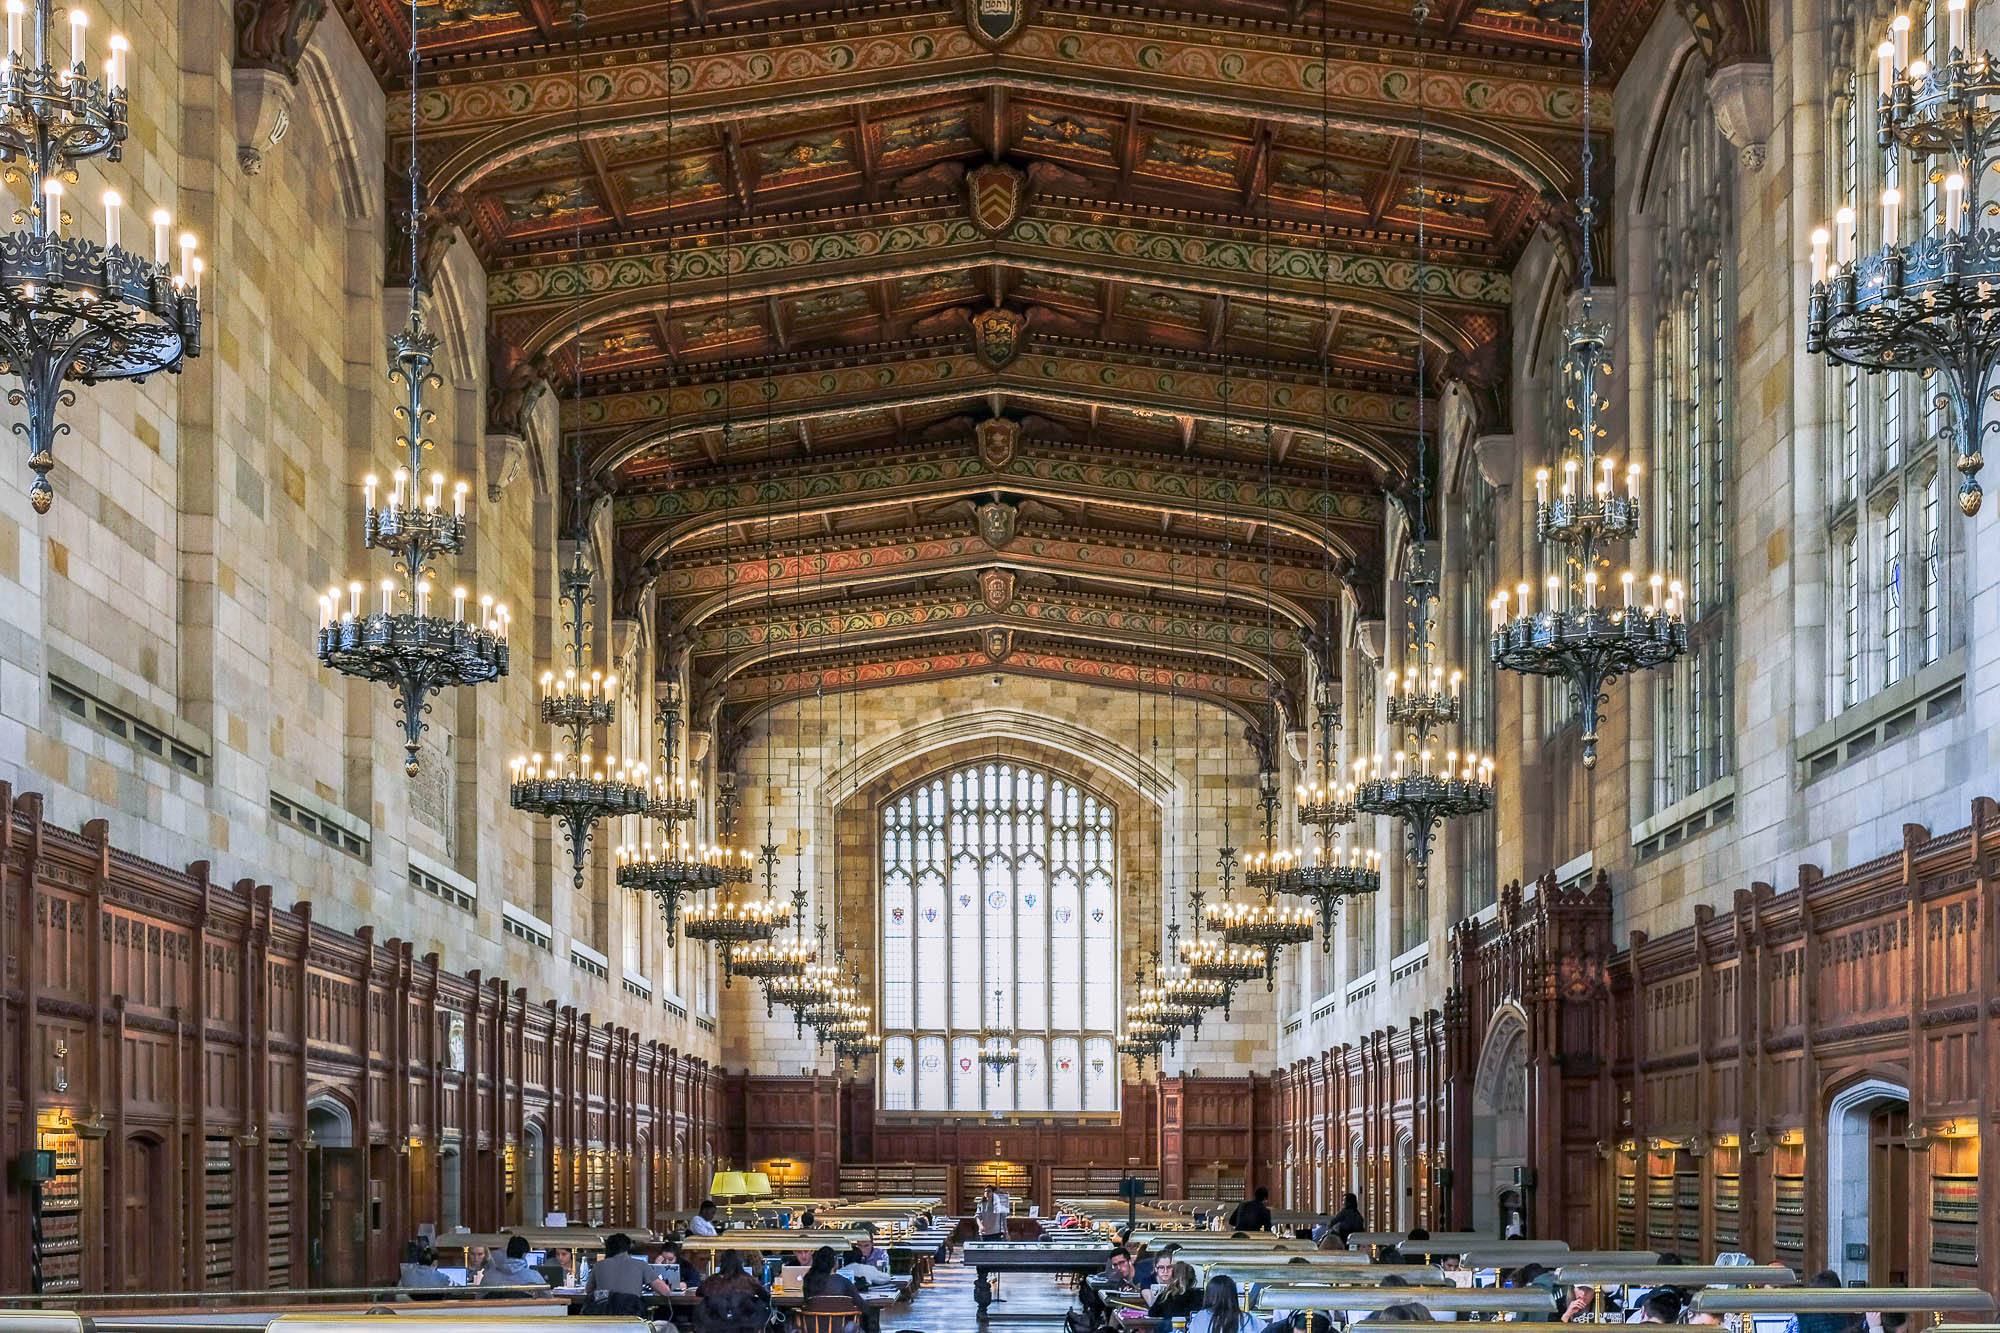 Image of the Cook Library, a neogothic reading room with a decorated ceiling and chandeliers.